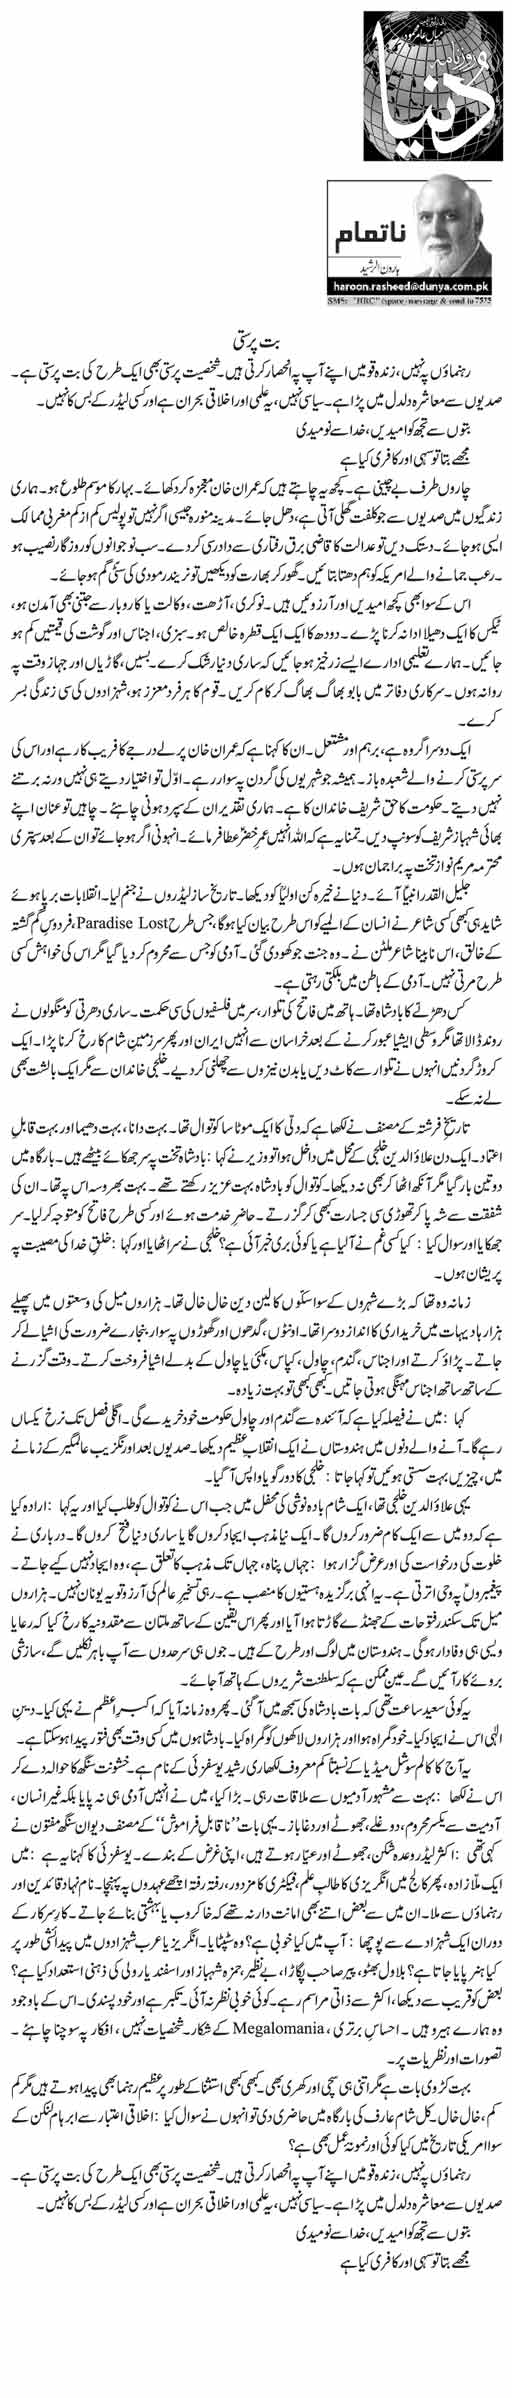 But Parasti | Haroon Ur Rasheed | Daily Urdu Columns